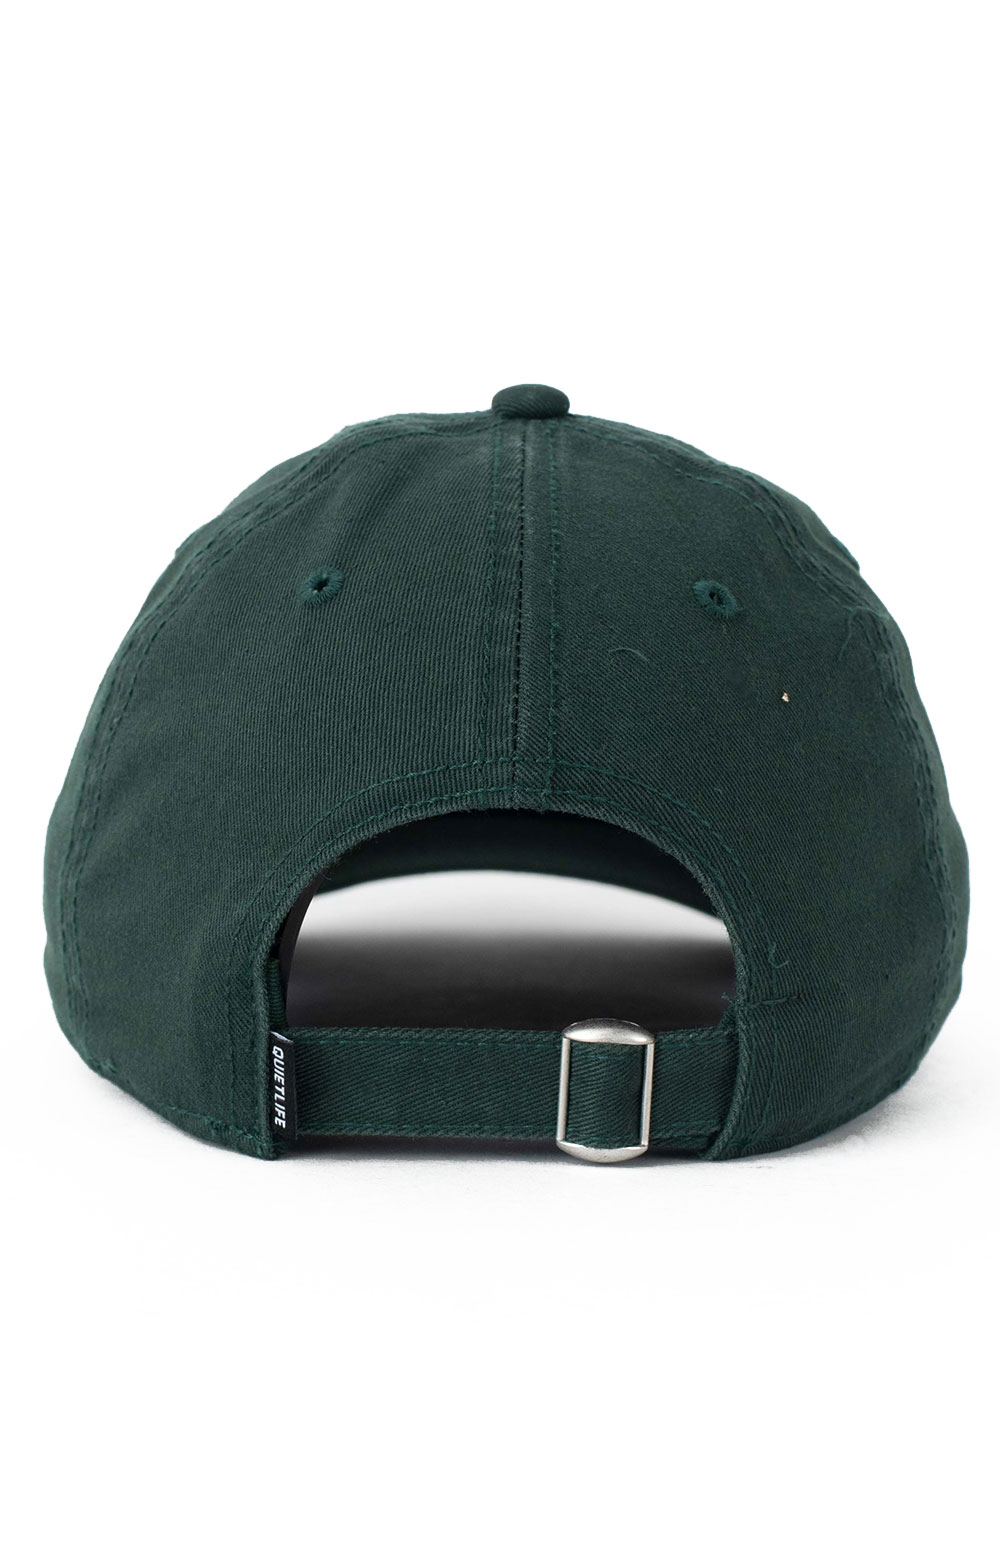 House Plants Dad Hat - Forest Green  3